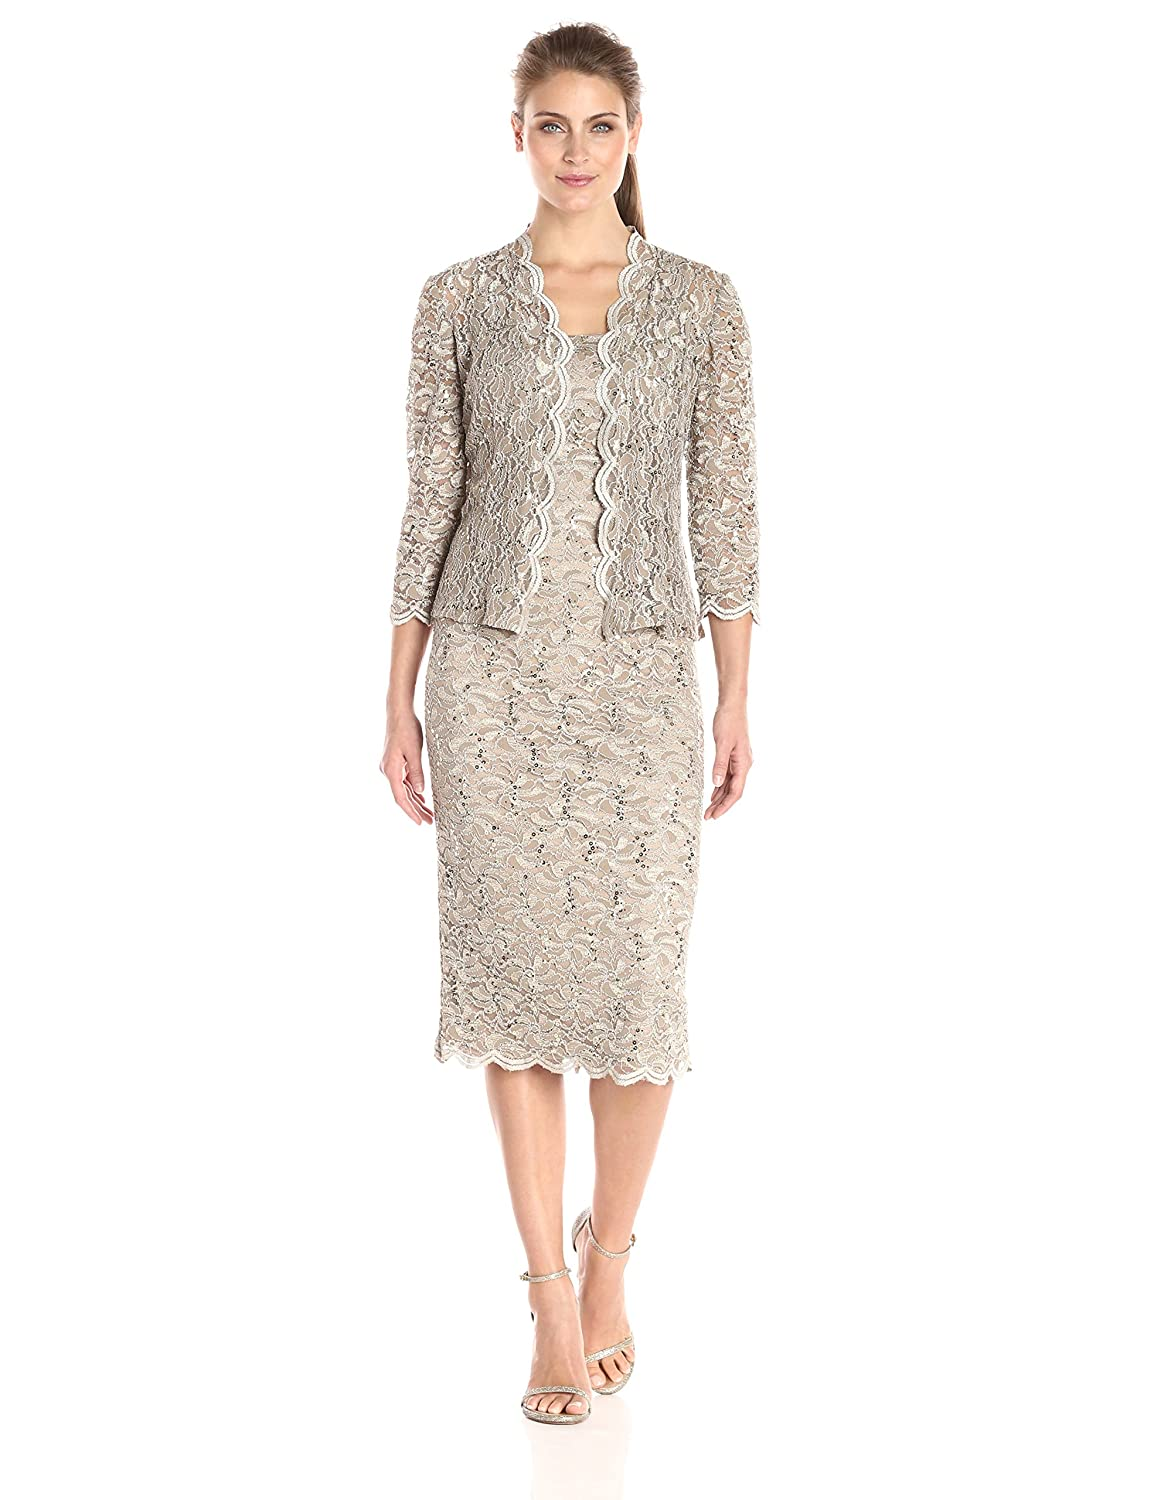 Champagne Alex Evenings Women's TLength All Over Lace Dress with Jacket Set